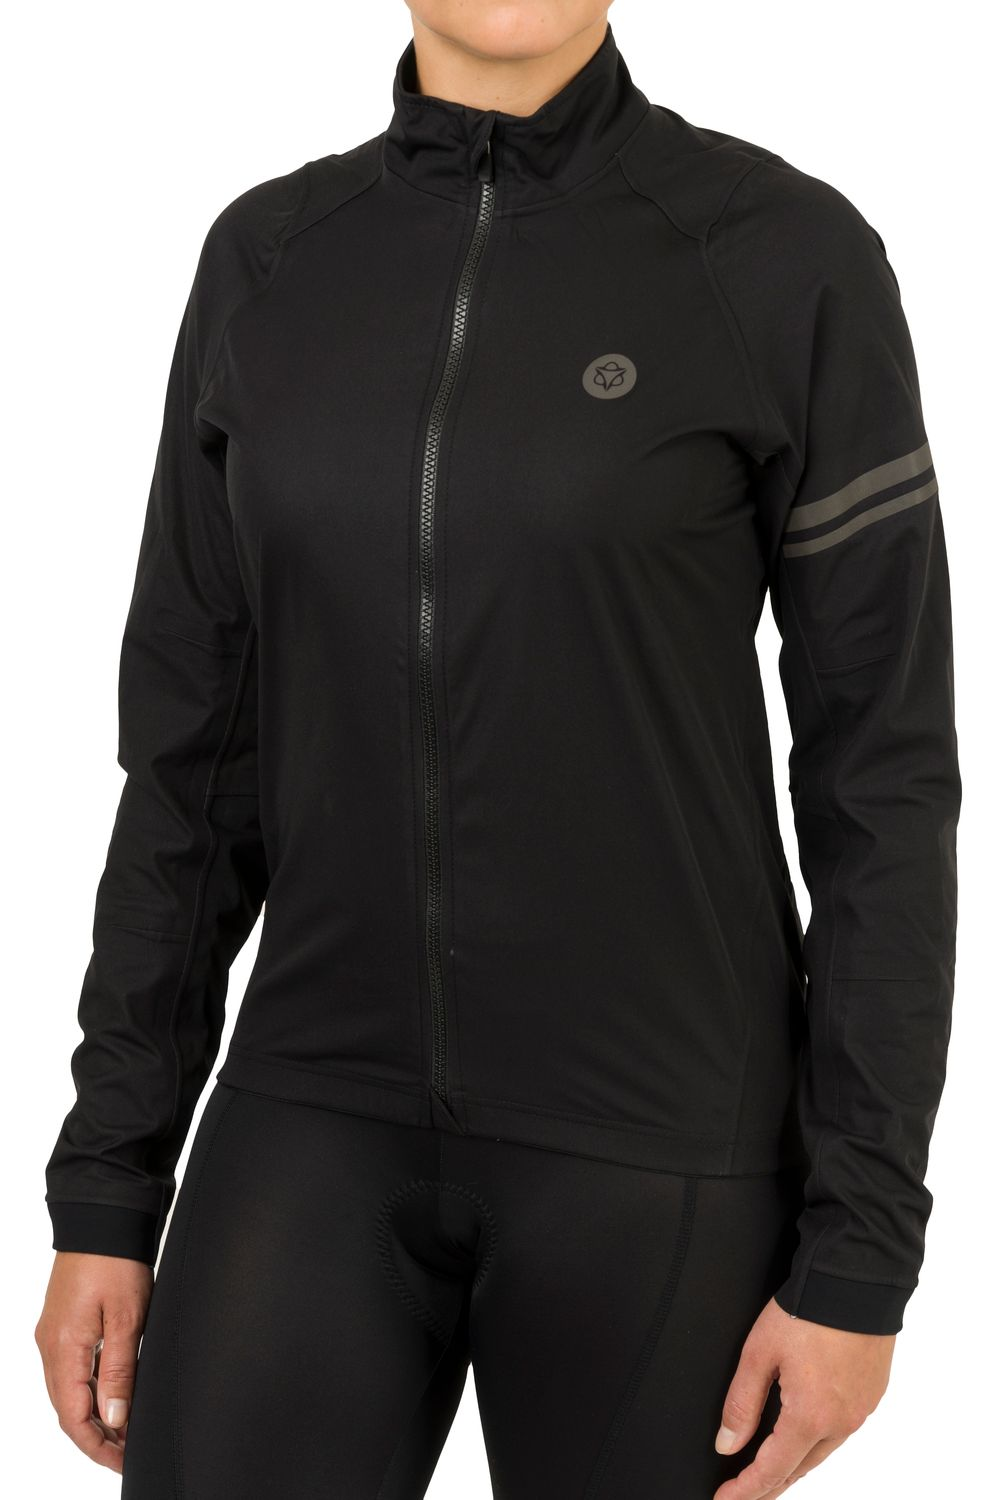 Event Regenjacke Premium Damen fit example